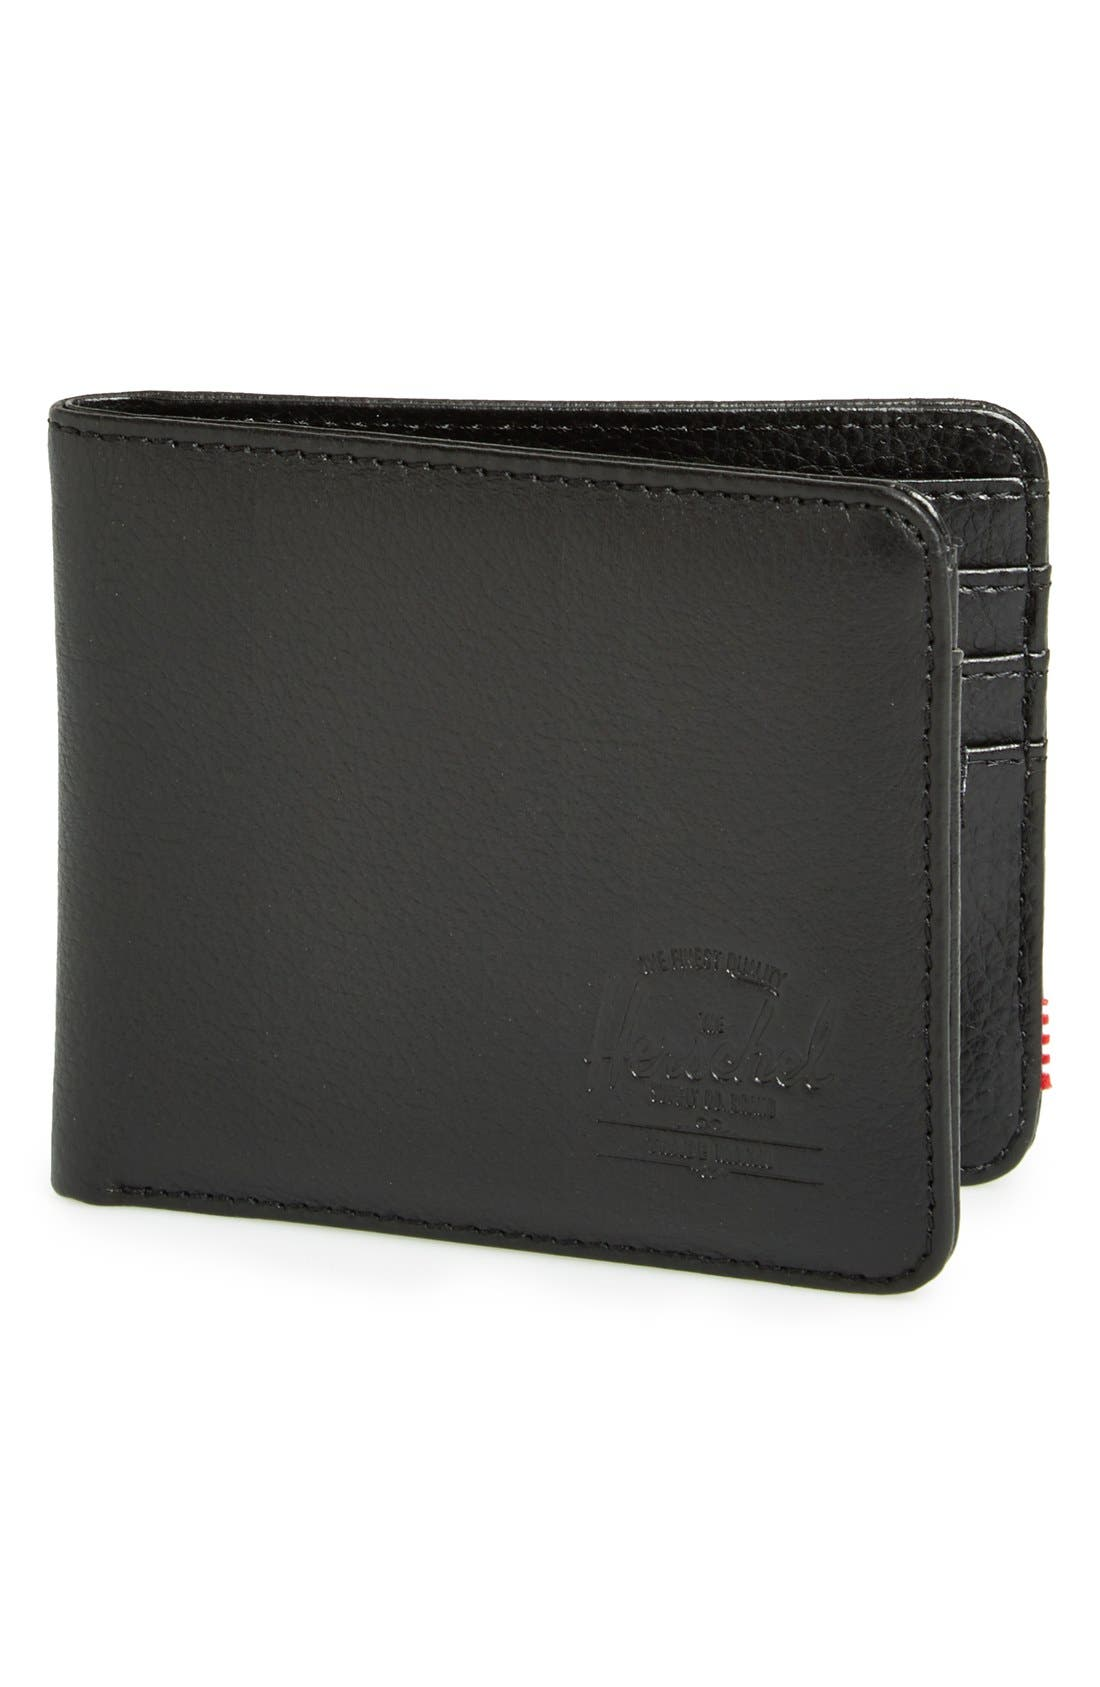 Main Image - Herschel Supply Co. 'Hank' Leather Bifold Wallet